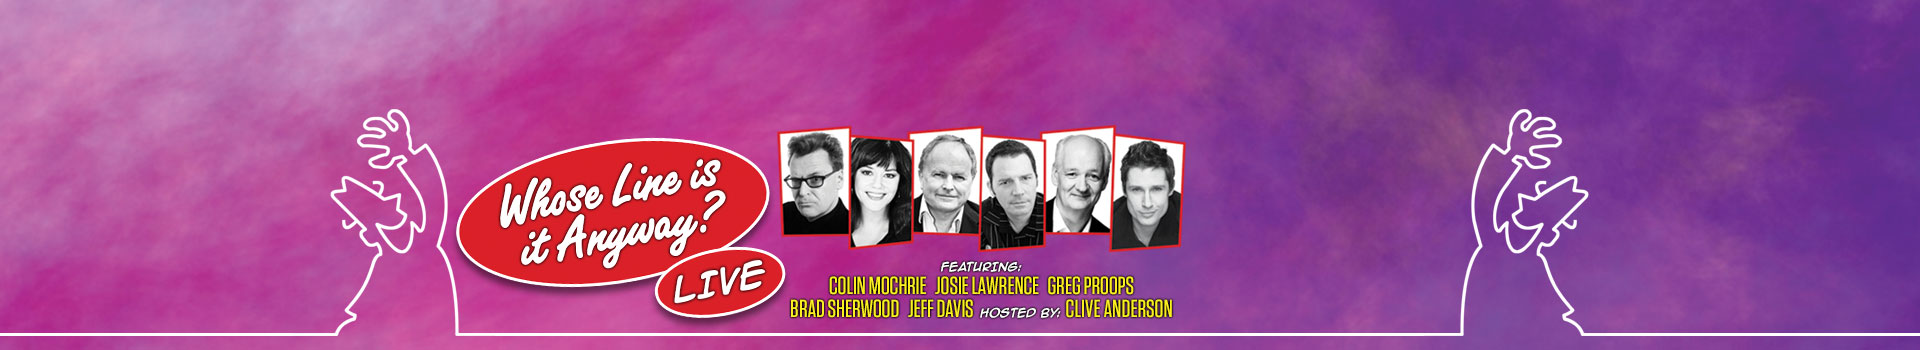 Whose Line Is It Anyway? Live banner image